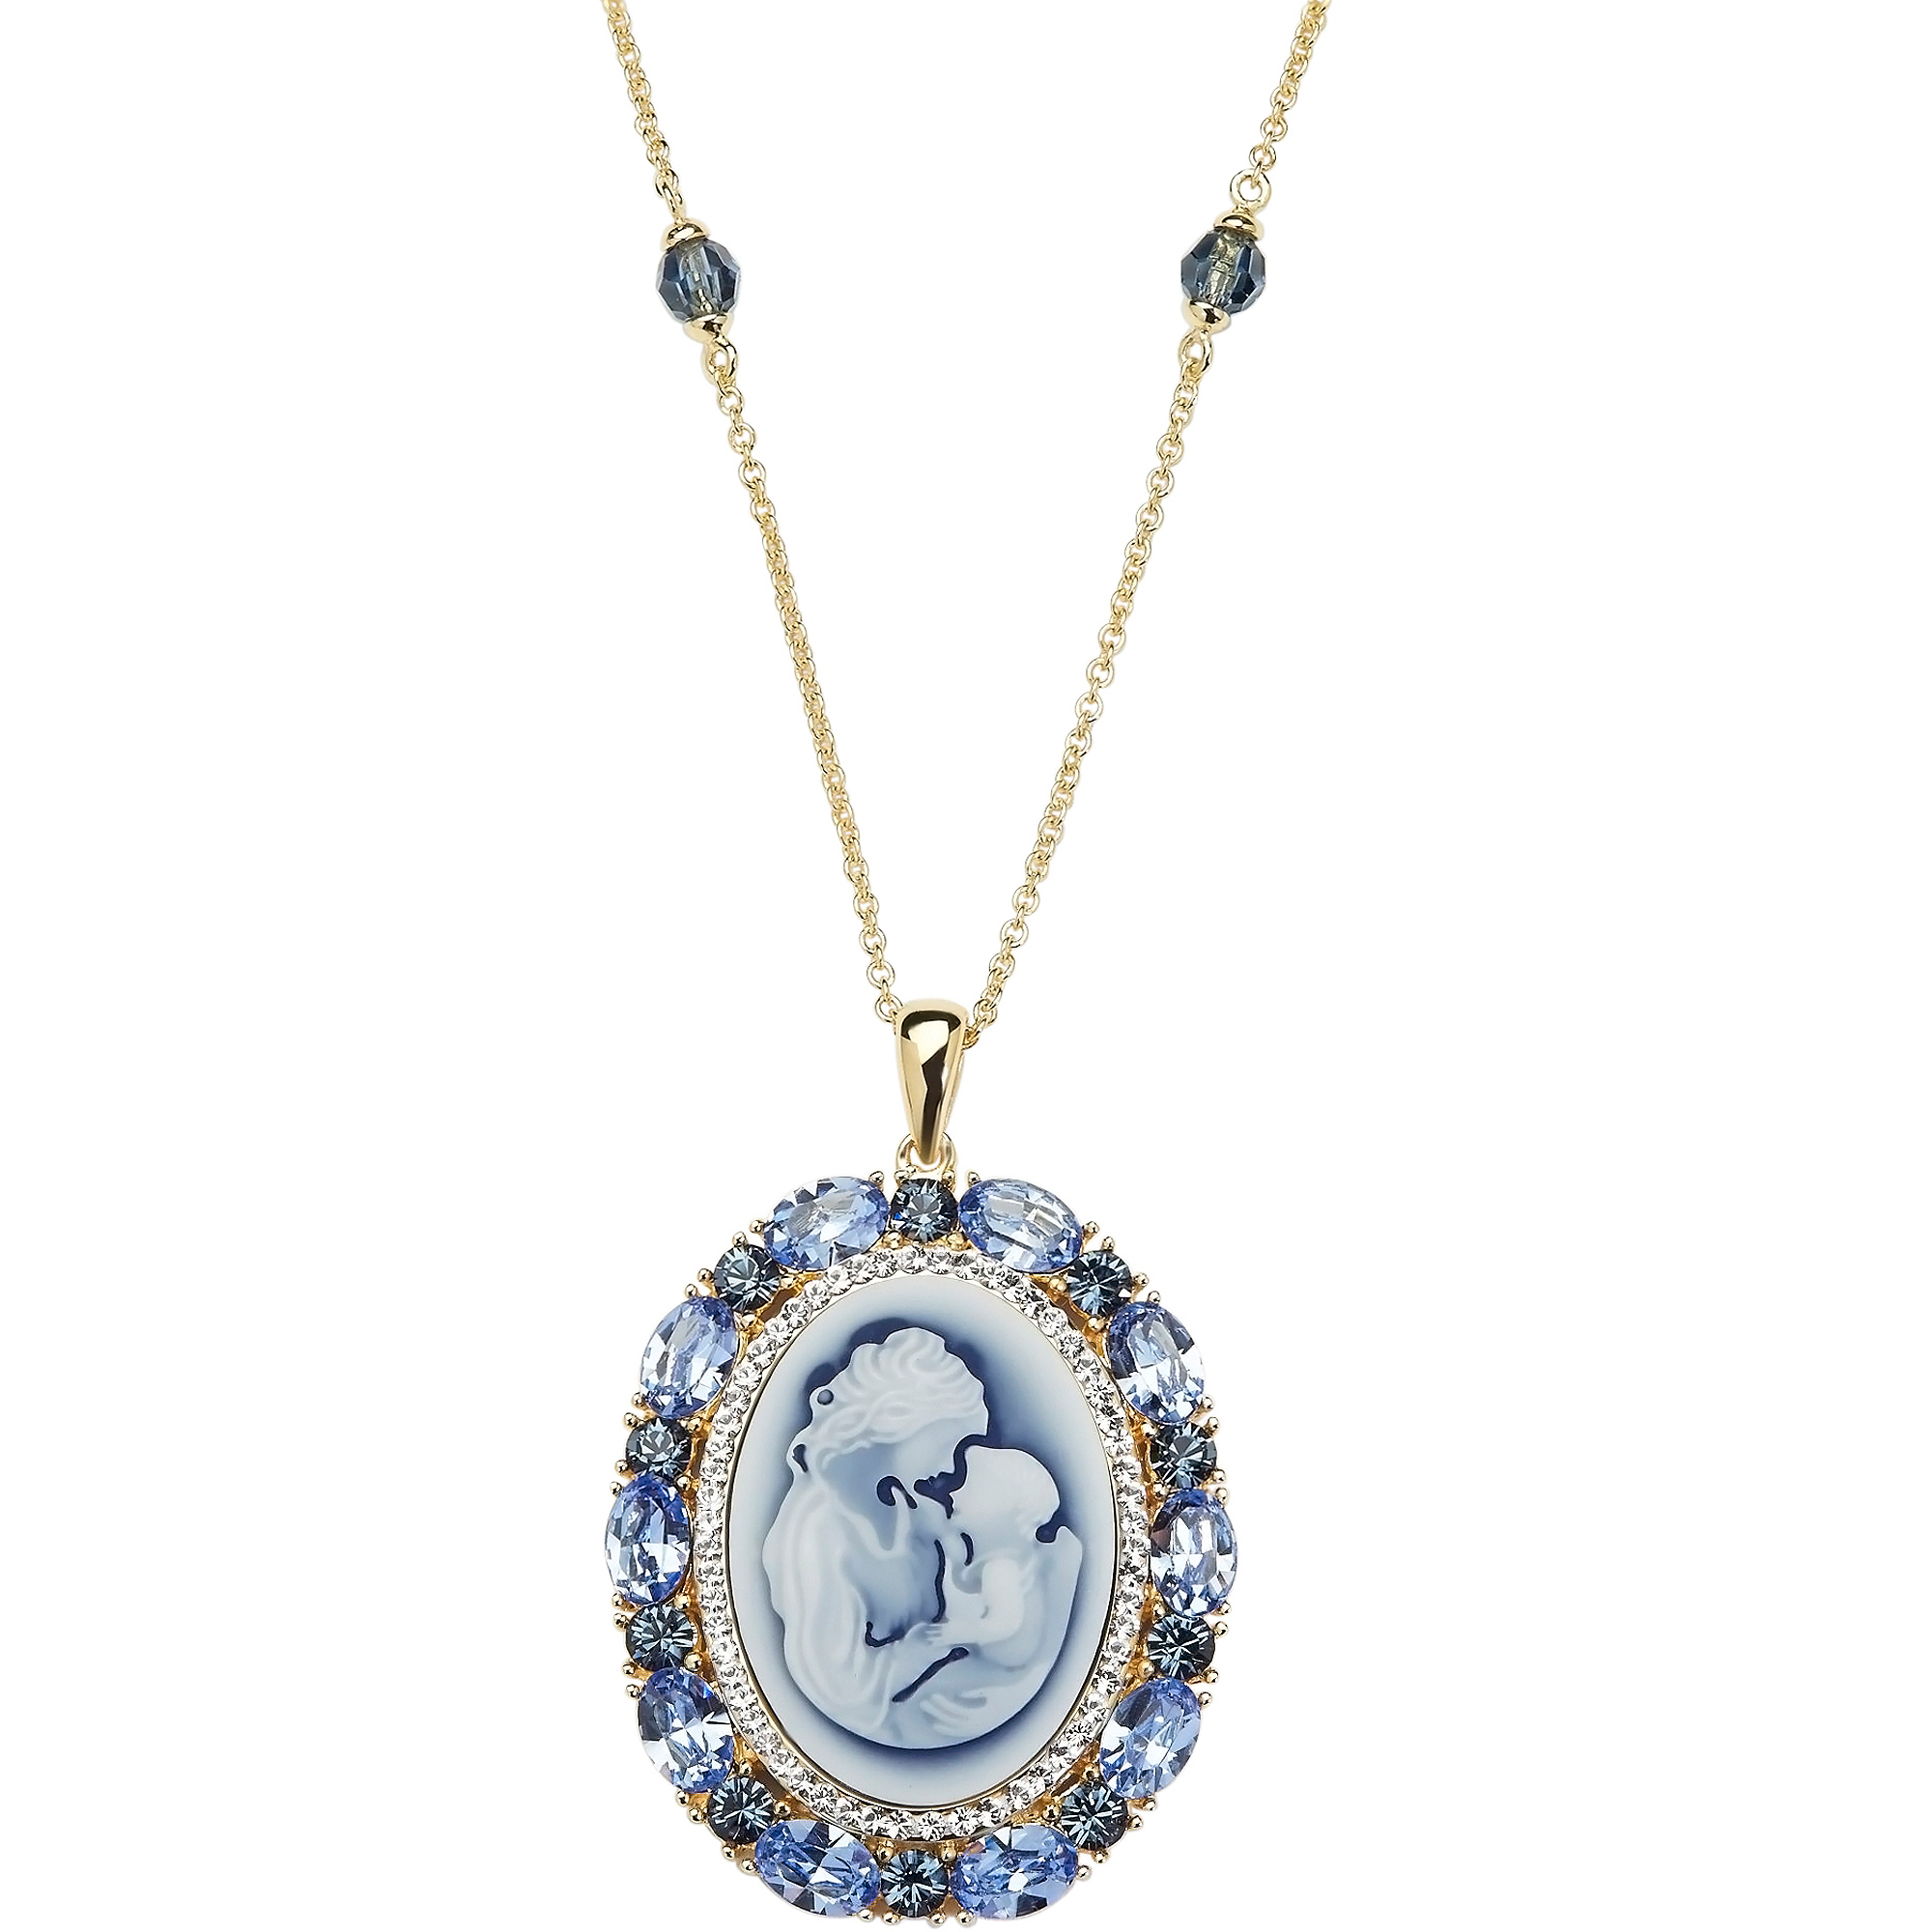 Sterling Silver and 18kt Gold Plate Colophony Oval Mother with Child Cameo Necklace with Swarovski Crystal Elements, 18""